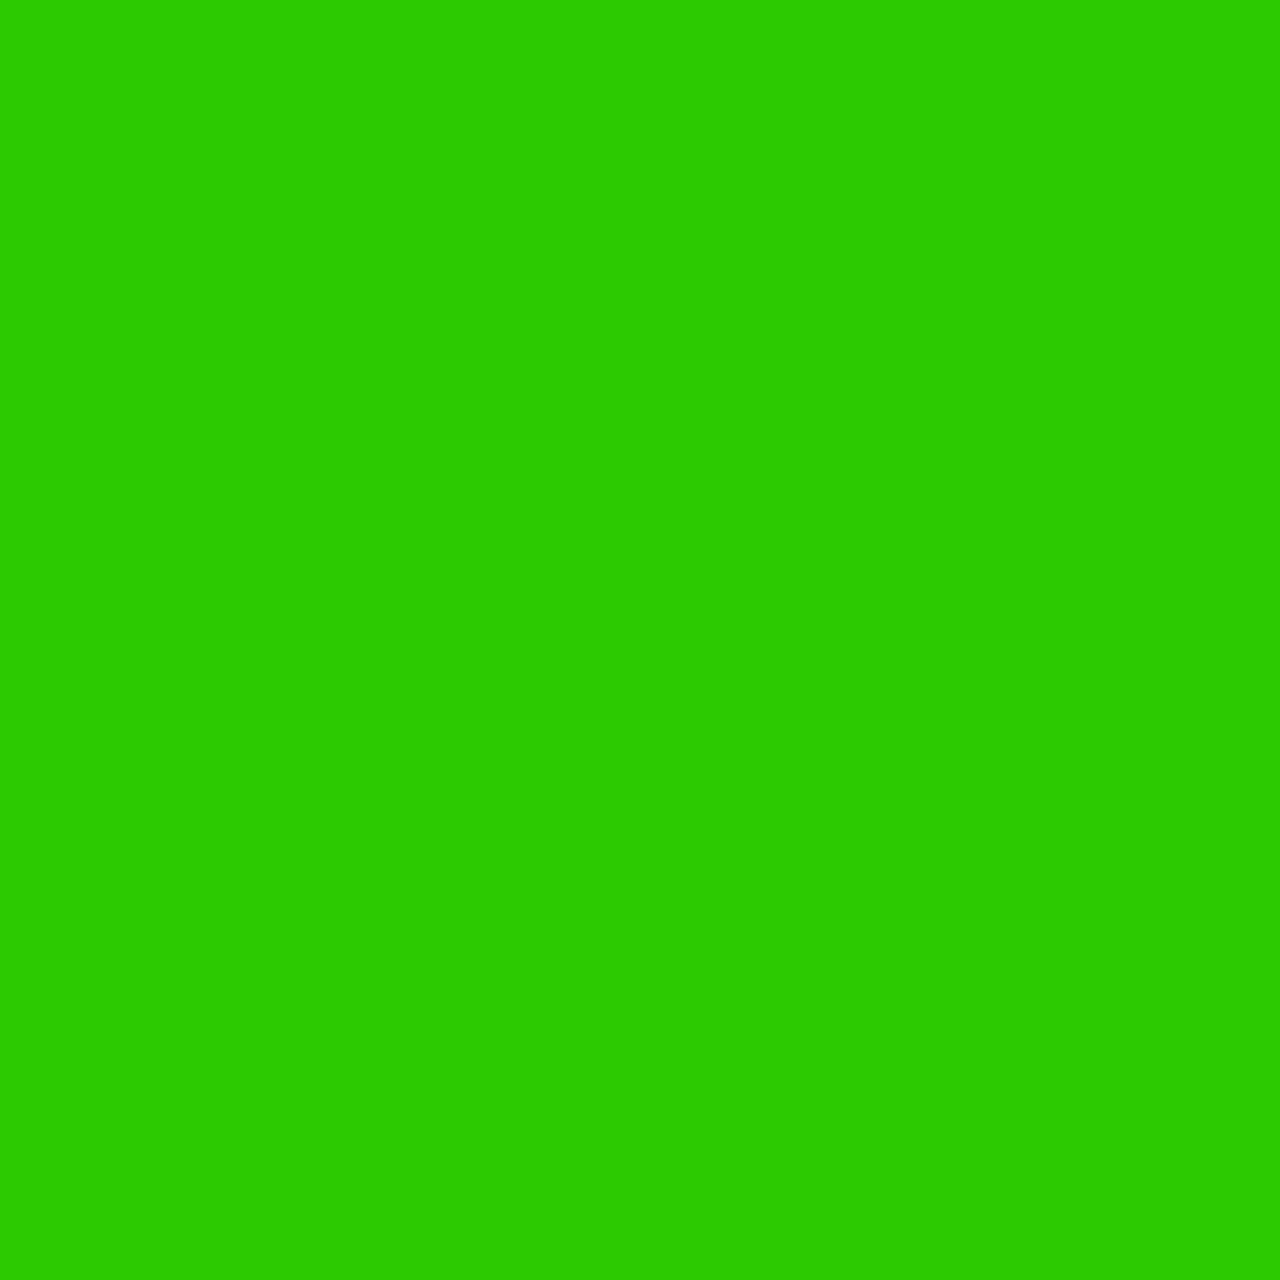 Roscolux Gel #389 Chroma Key Green, Green Screen